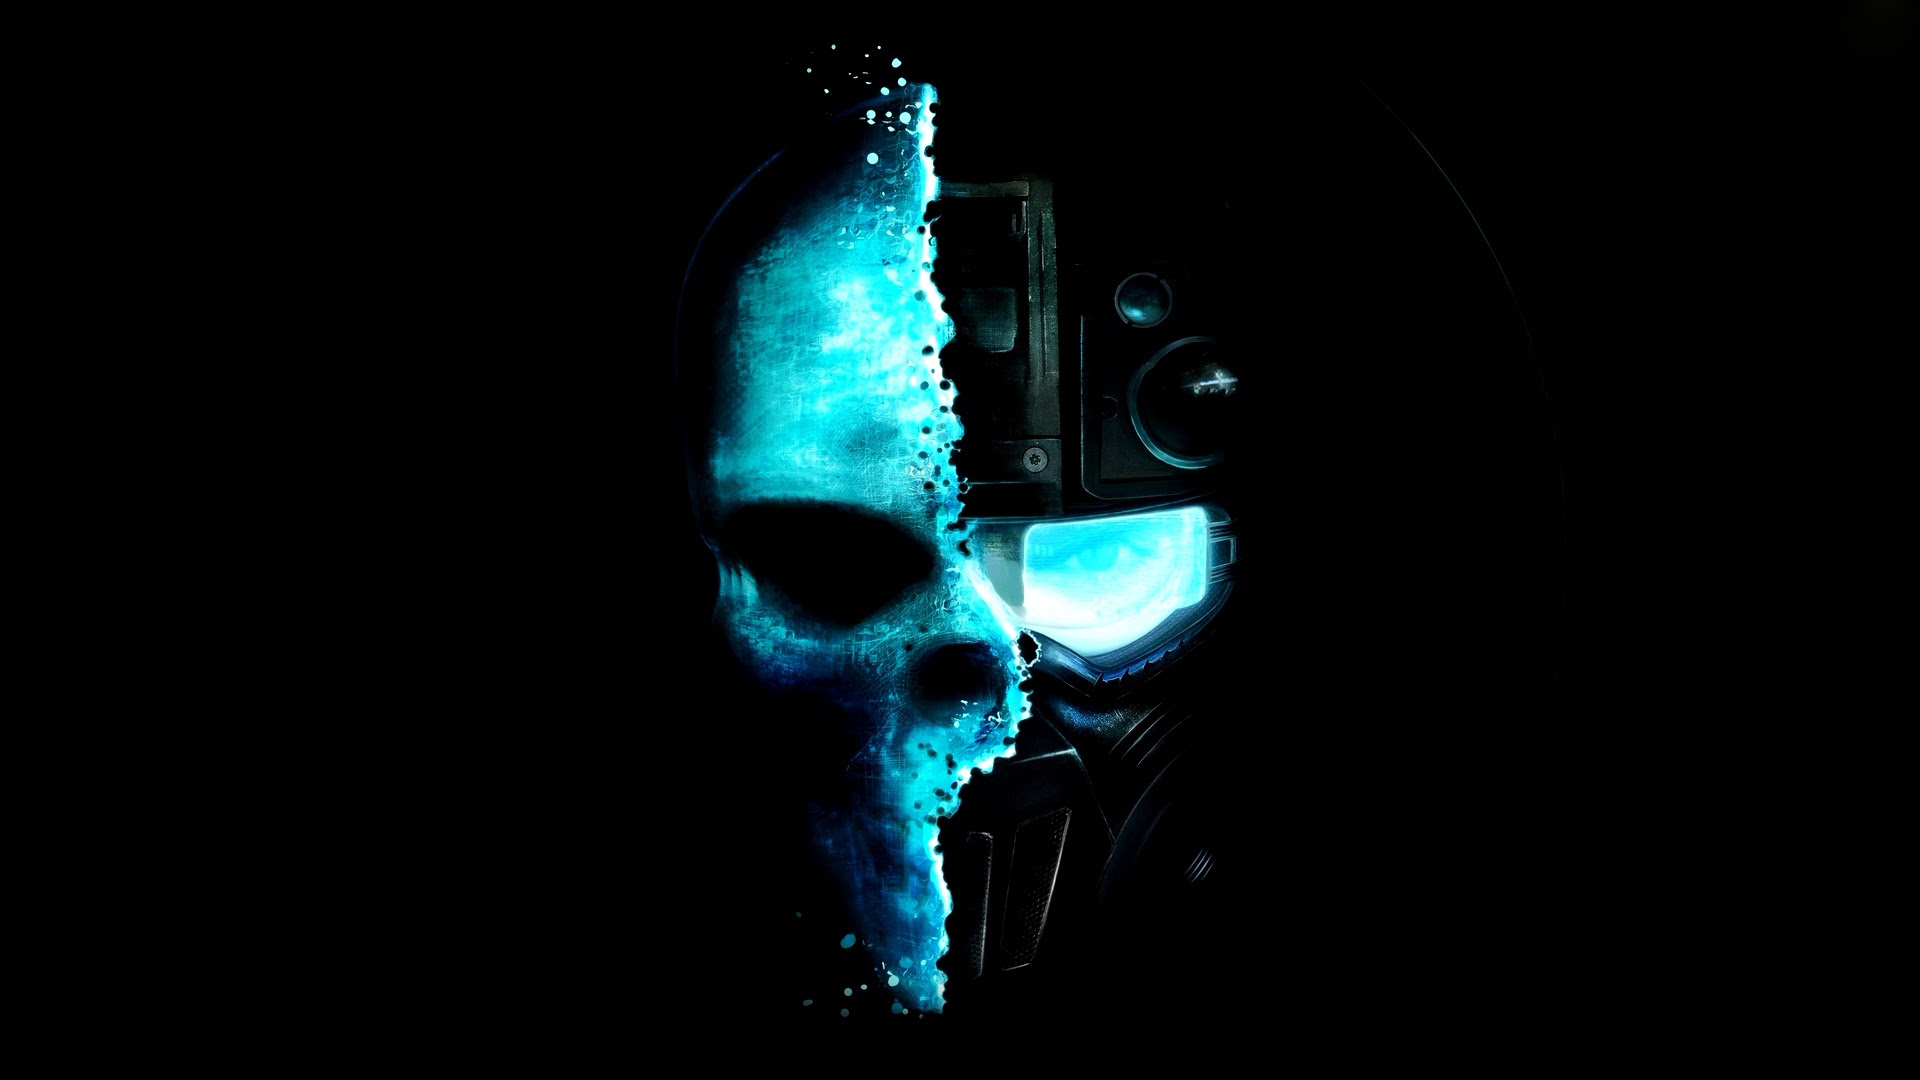 Cool Pictures Black And Blue Skull 4237424 1920x1080 All For